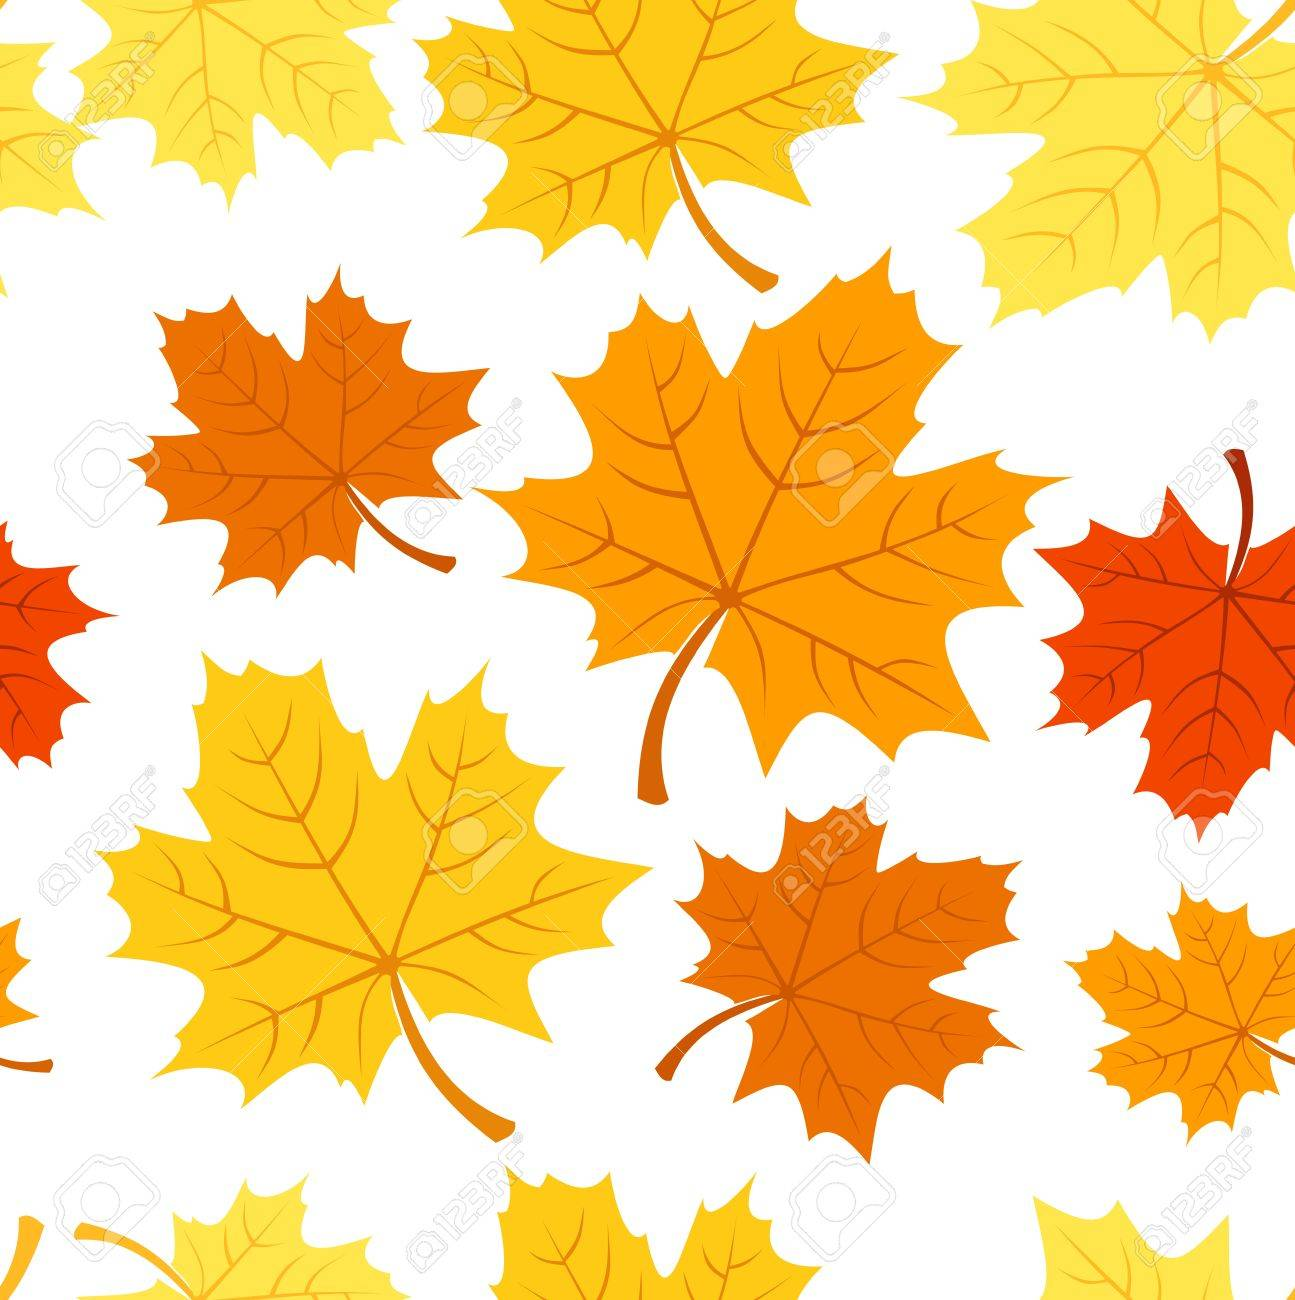 Seamless pattern with autumn maple leaves. Vector illustration. Stock Vector - 18259460